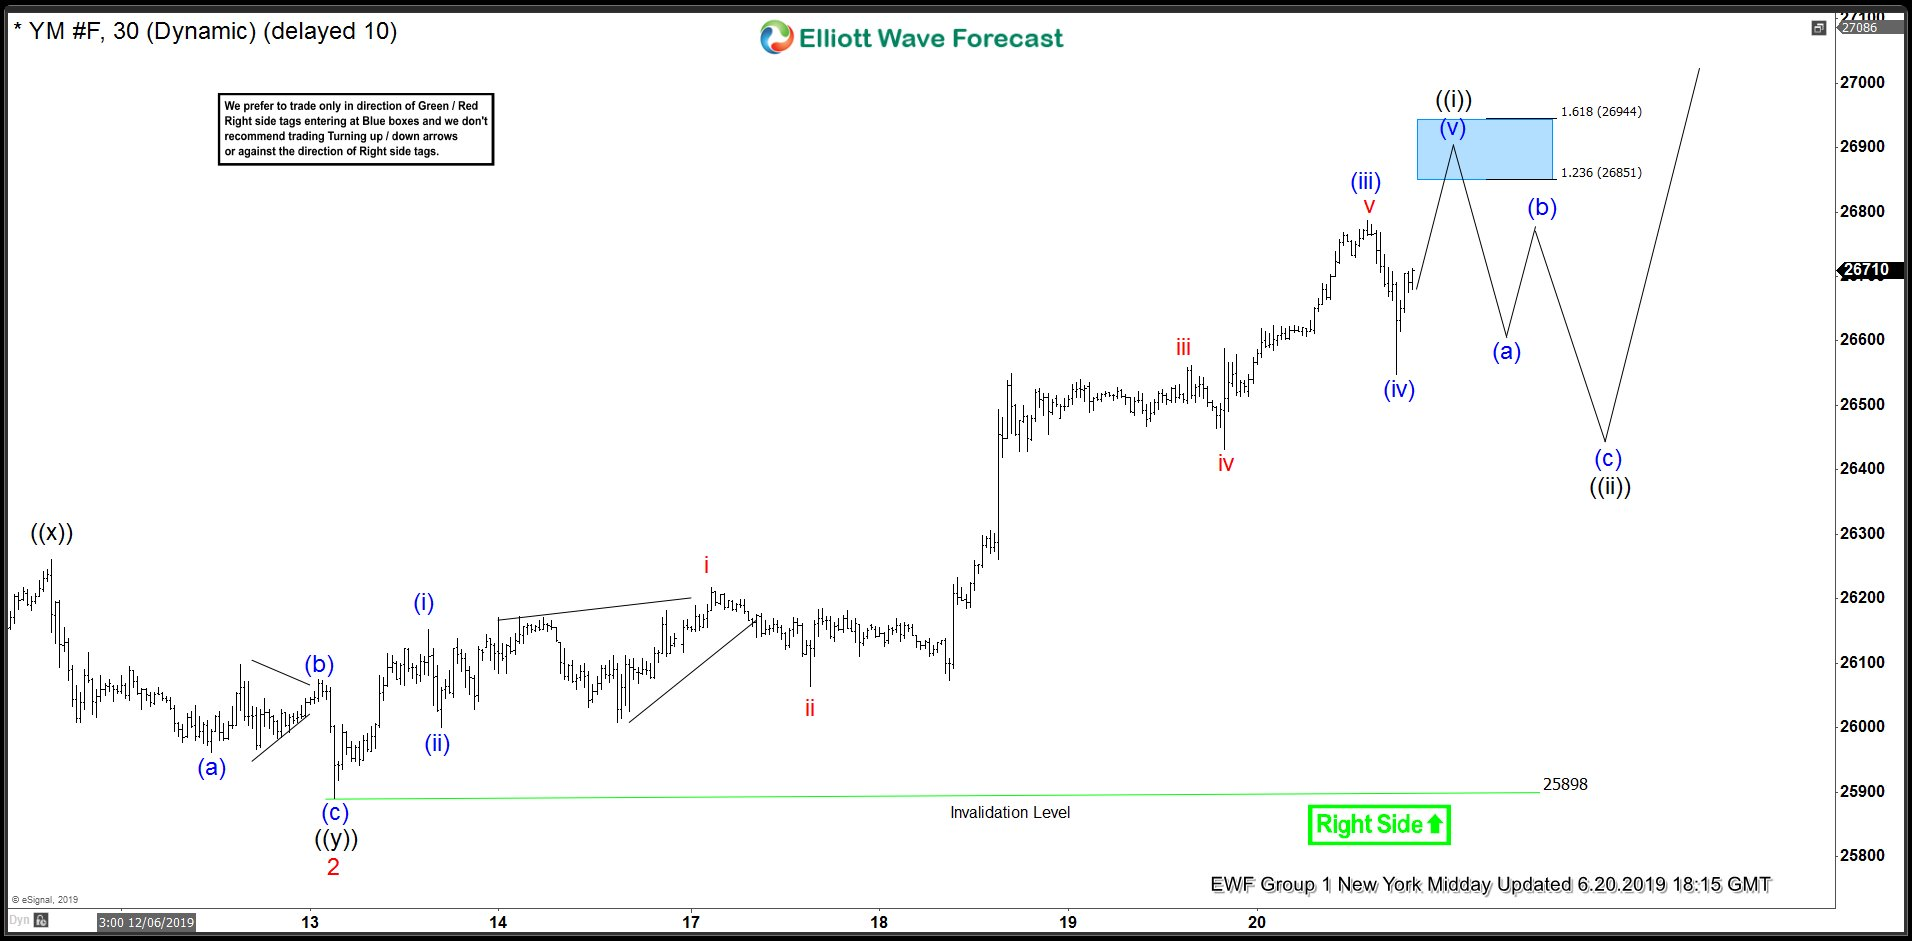 $YM_F (Dow Futures) Forecasting The Rally with Elliott Wave